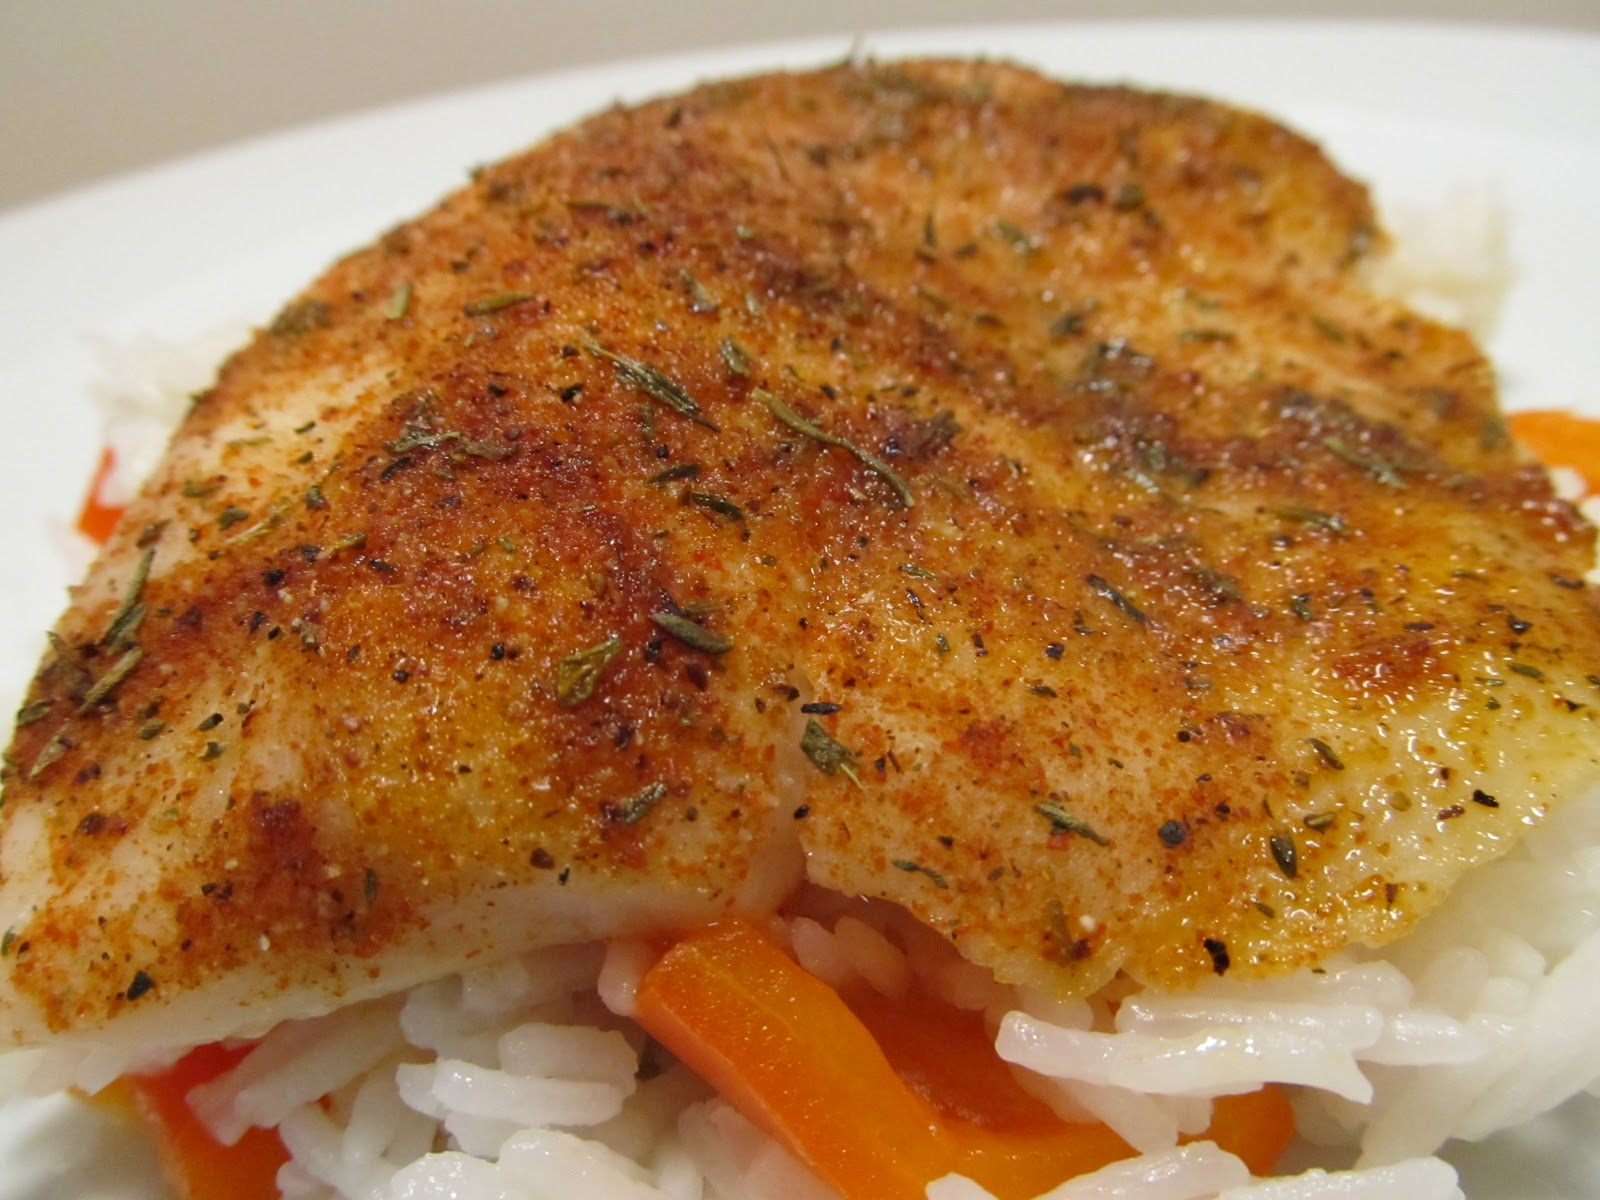 ... how to bake tilapia healthy tilapia recipes baked tilapia fish baked